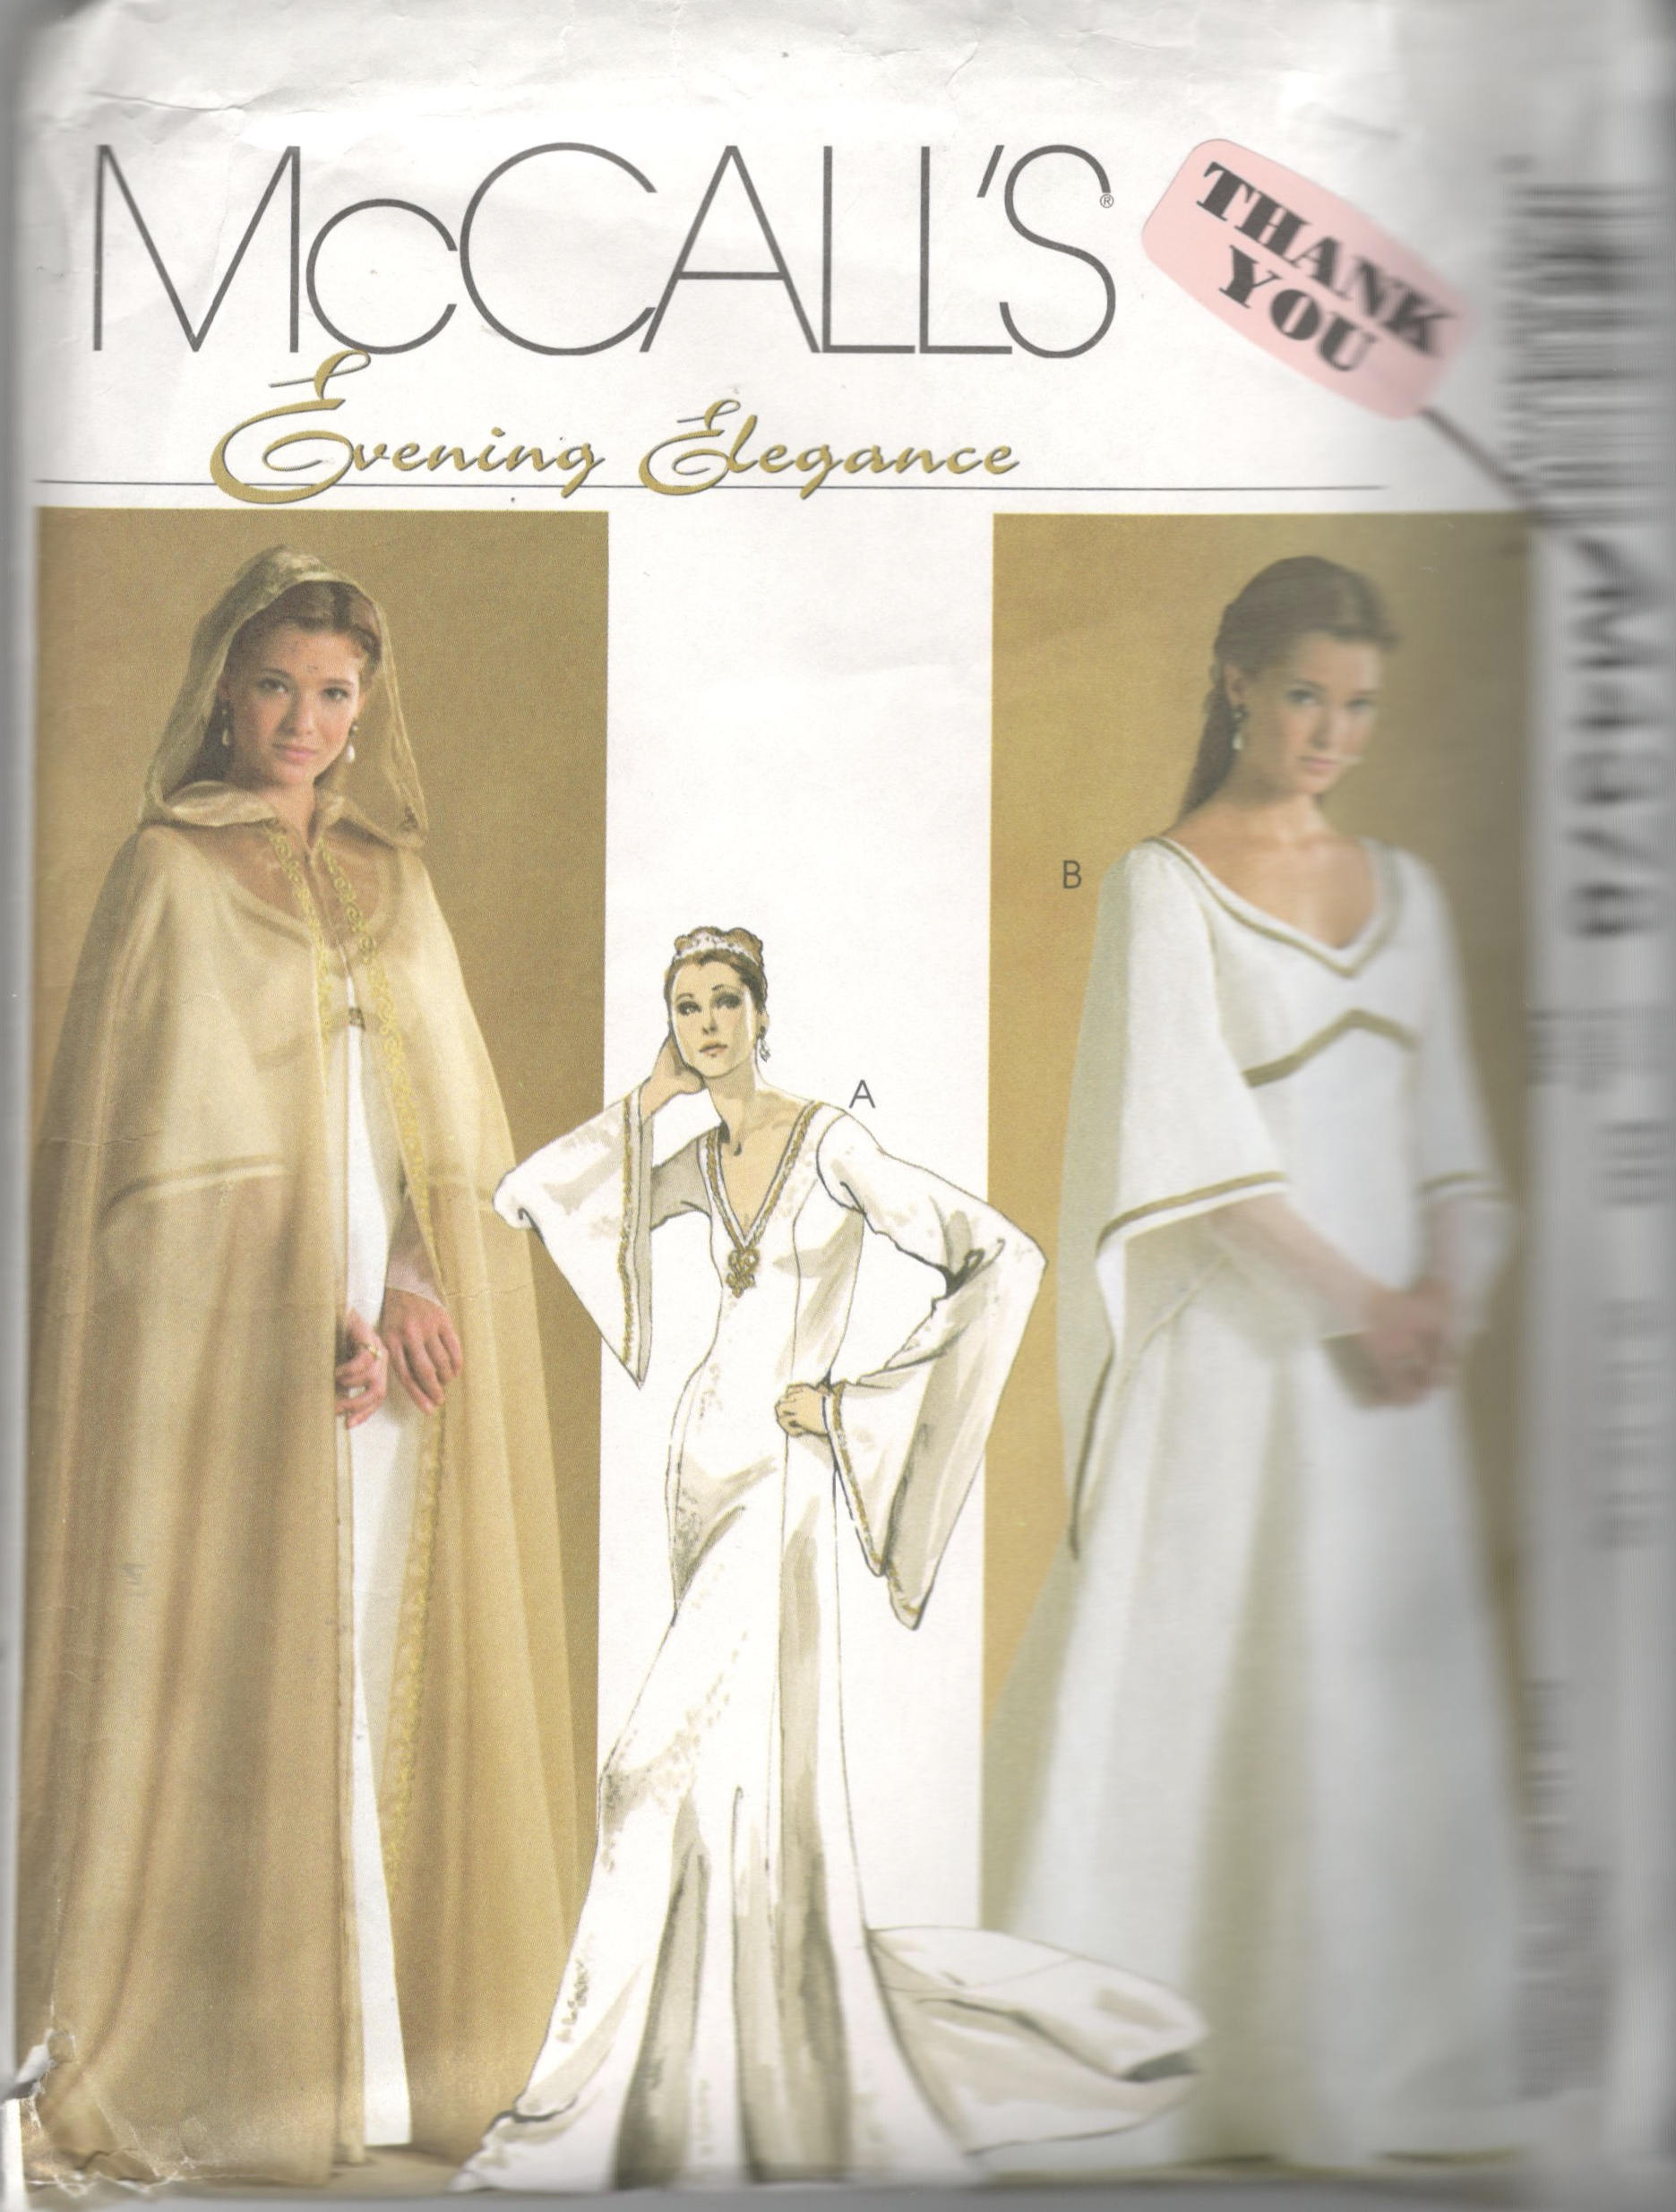 Mccalls 4378 renaissance fair costume pattern miss dress and sold by mbchills jeuxipadfo Images